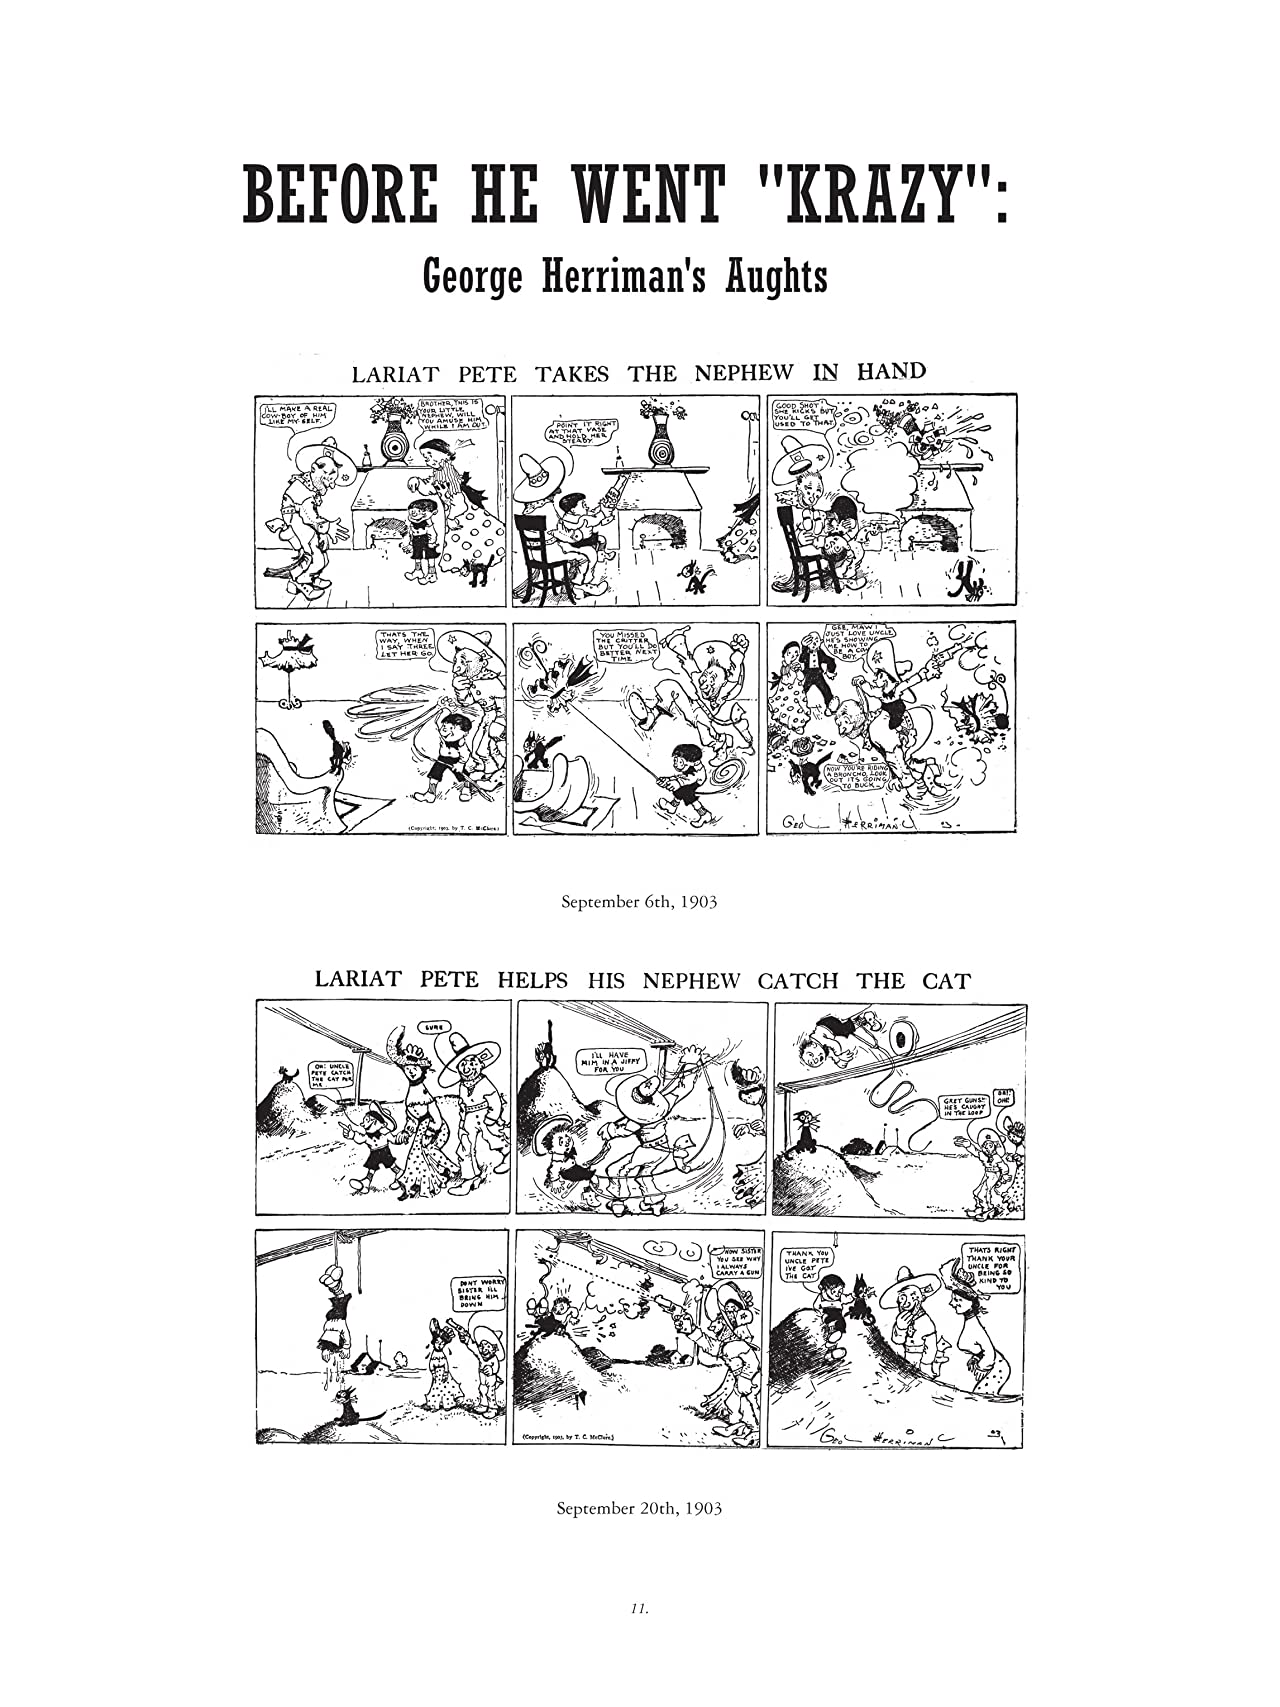 Krazy & Ignatz: 1916-1918 - Love in a Kestle or Love in a Hut